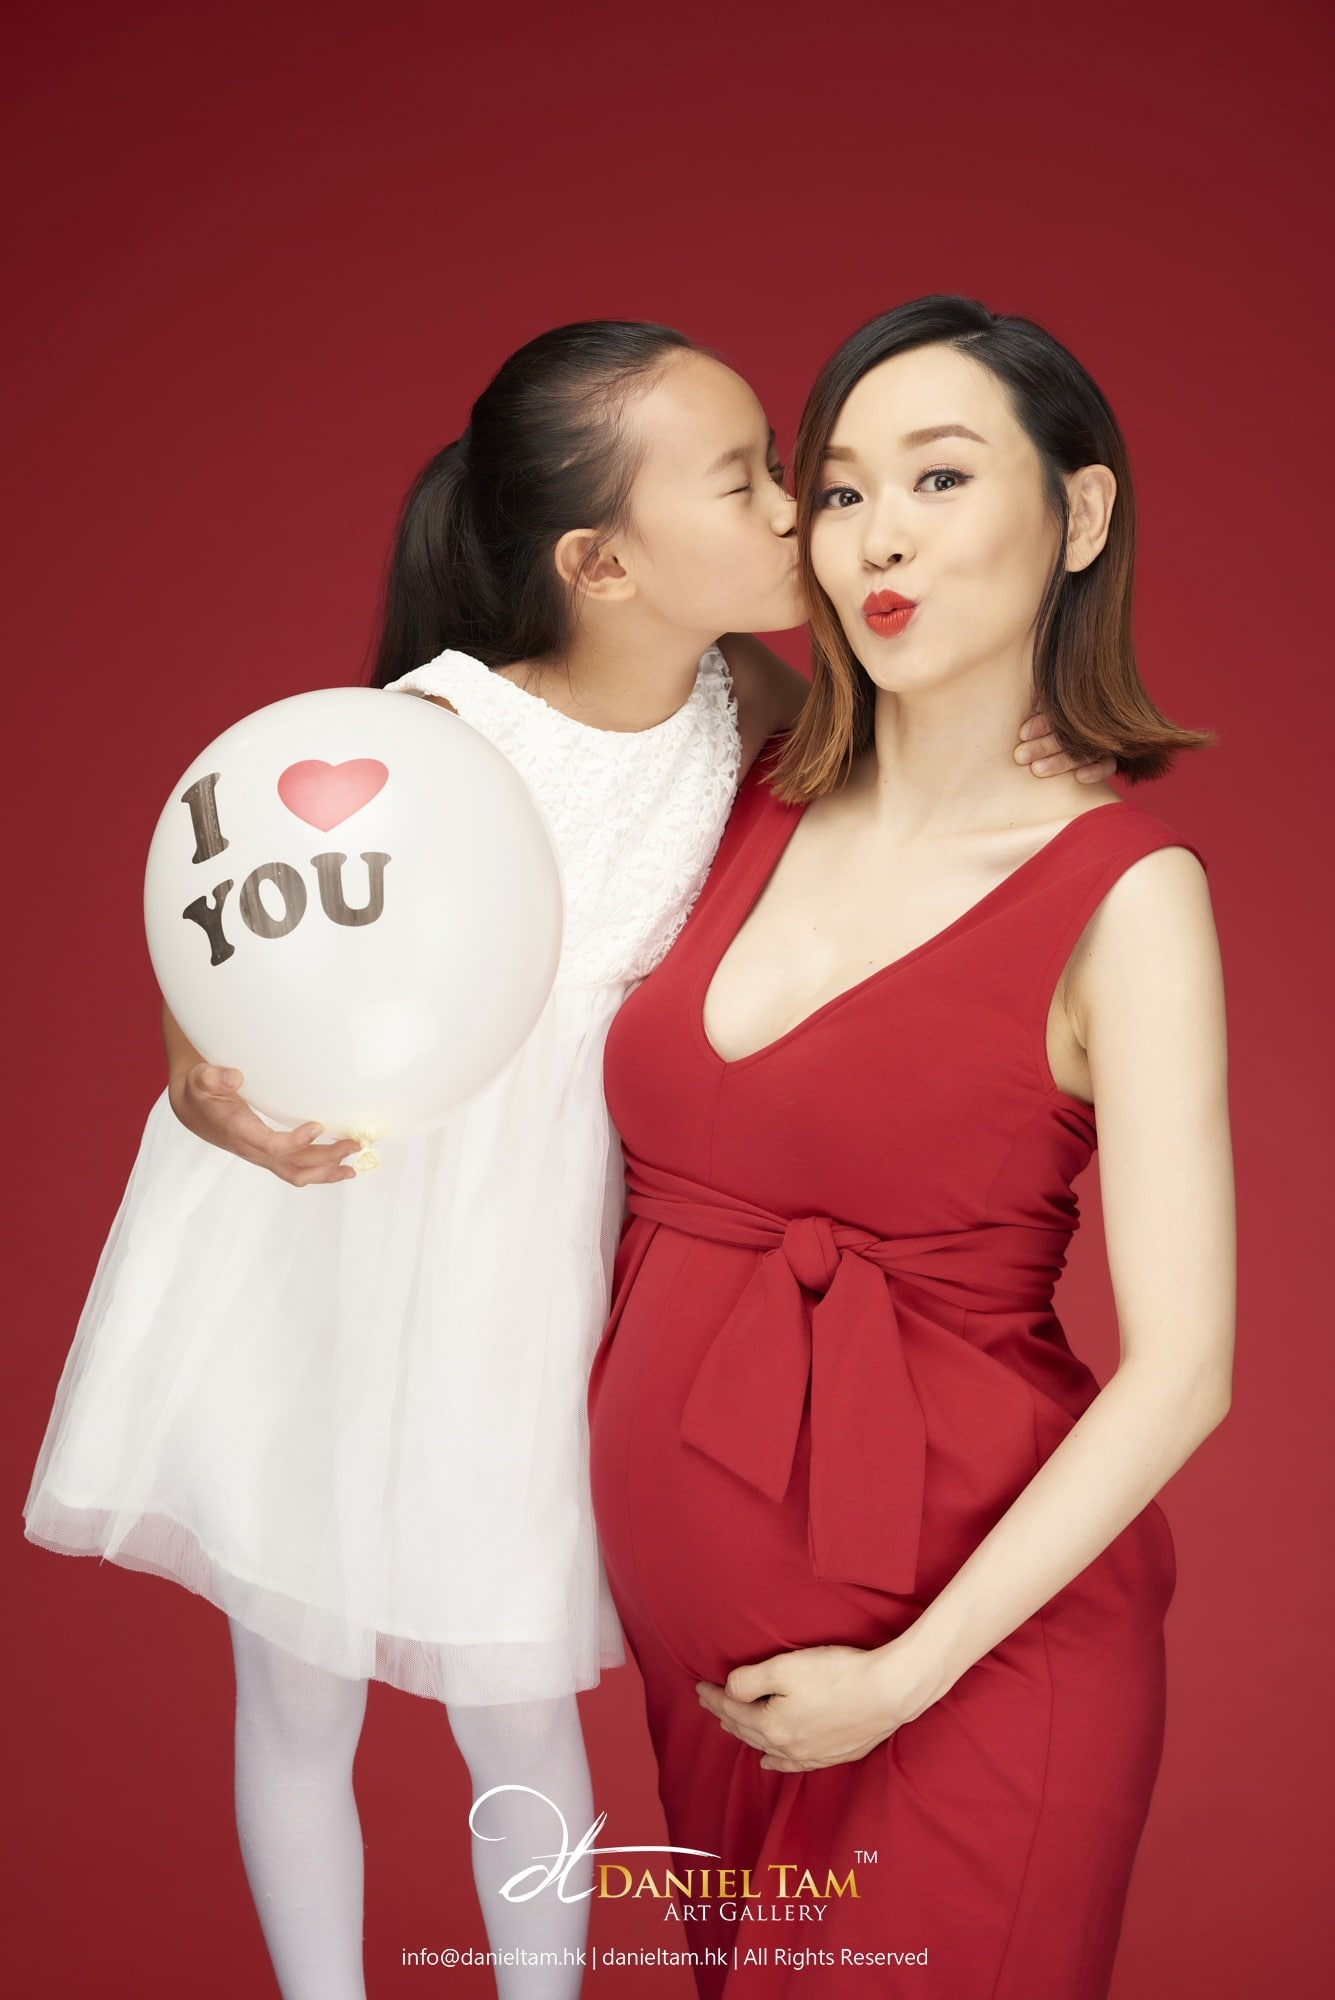 楊思琦 yeung sze kei pregnancy photo 007